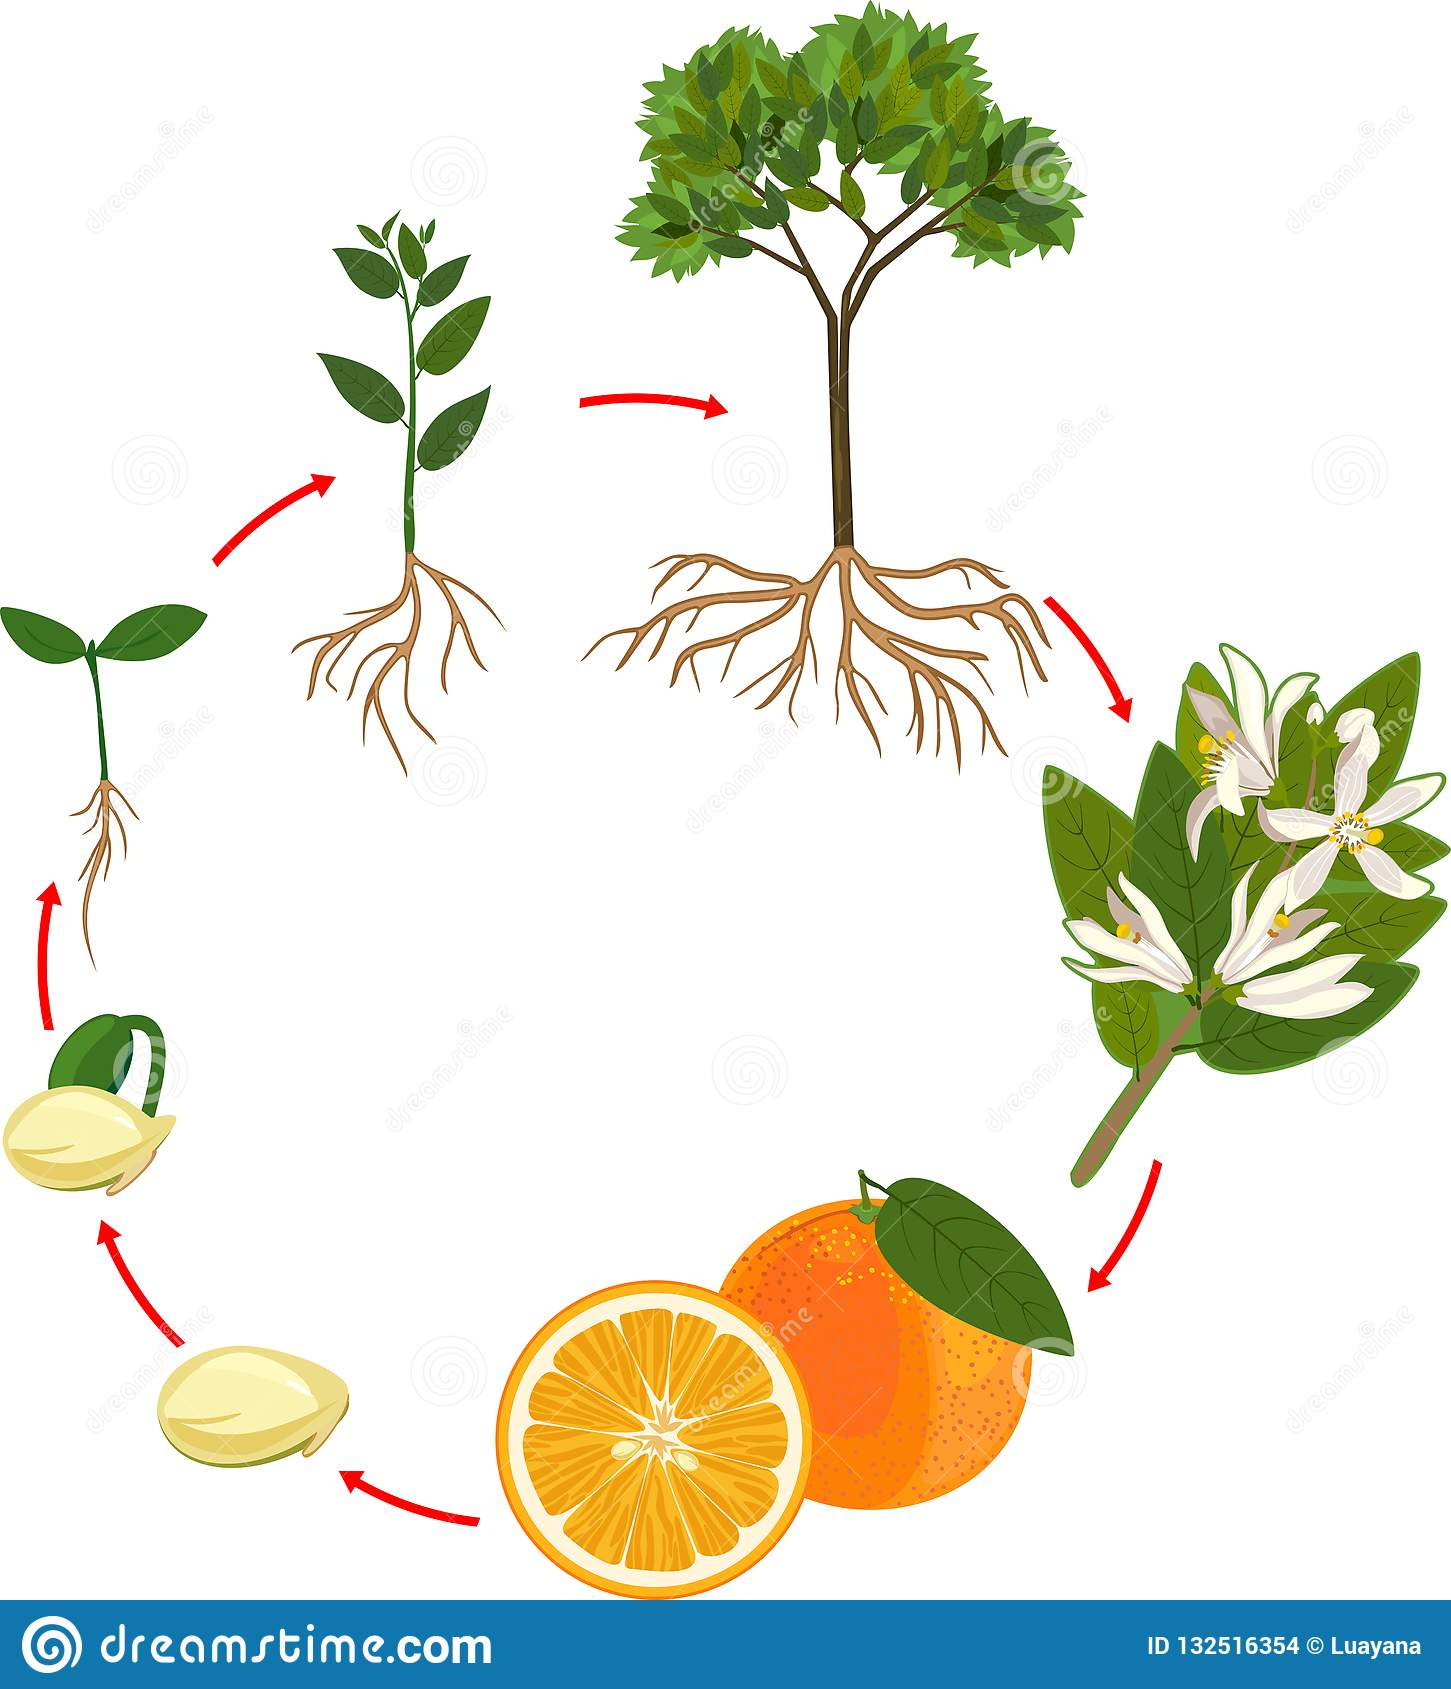 Life cycle of orange tree stock vector. Illustration of nature - 132516354Dreamstime.com